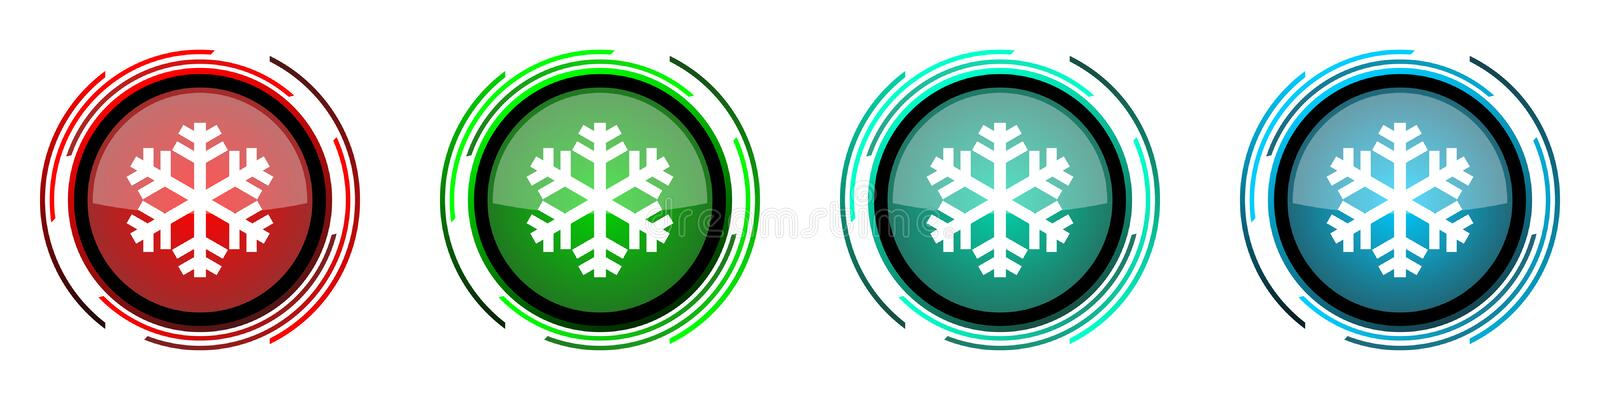 Snow round glossy vector icons, set of buttons for webdesign, internet and mobile phone applications in four colors options. Isolated on white royalty free illustration